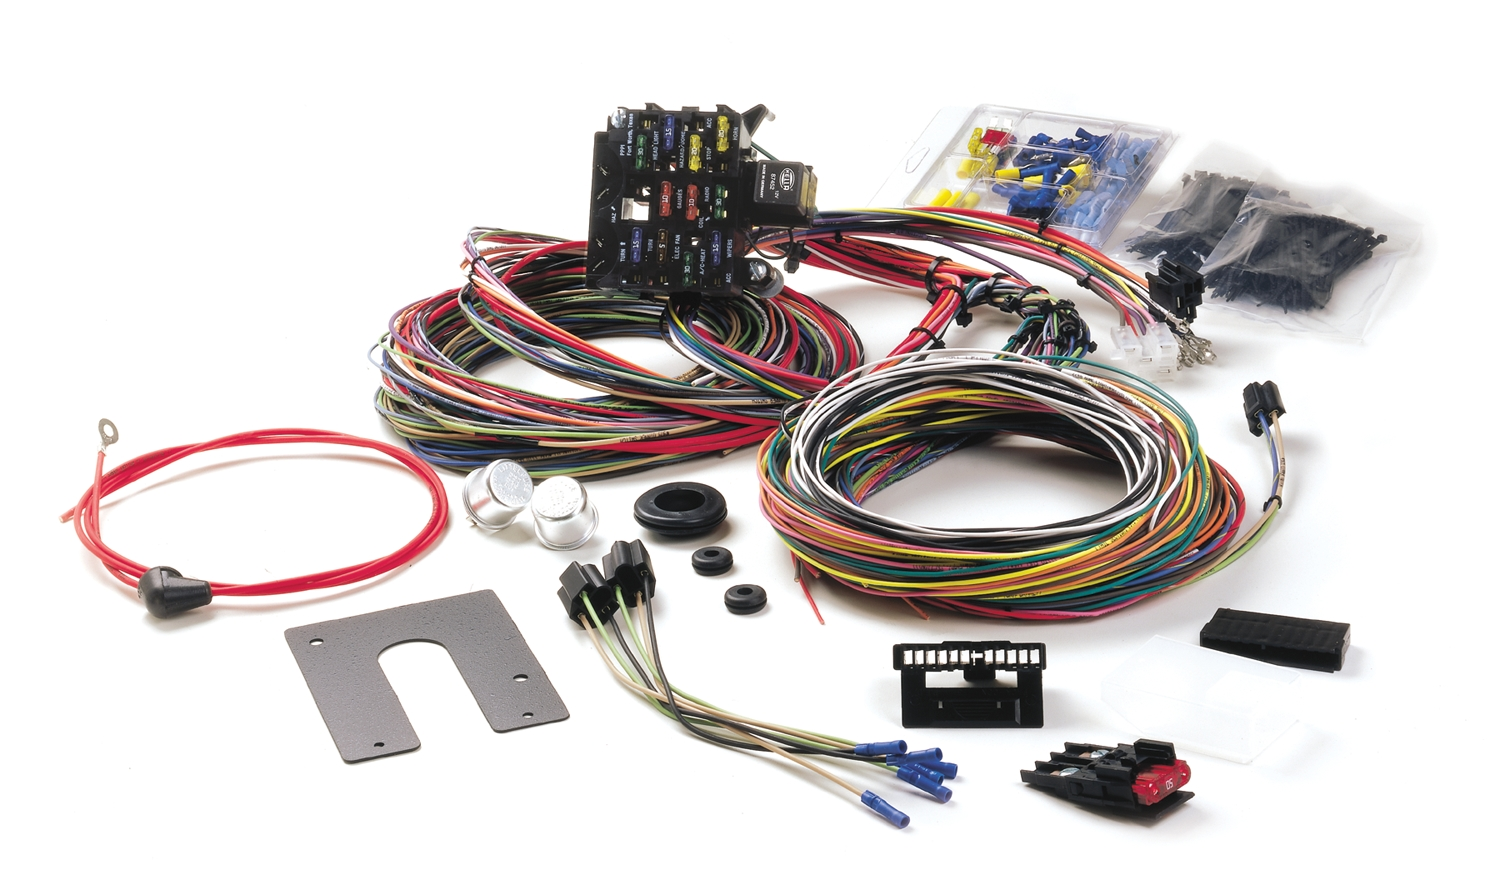 Ford Wiring Harness Kits Diagrams F100 Fuse Box Painless Performance In 39 2006 Escape